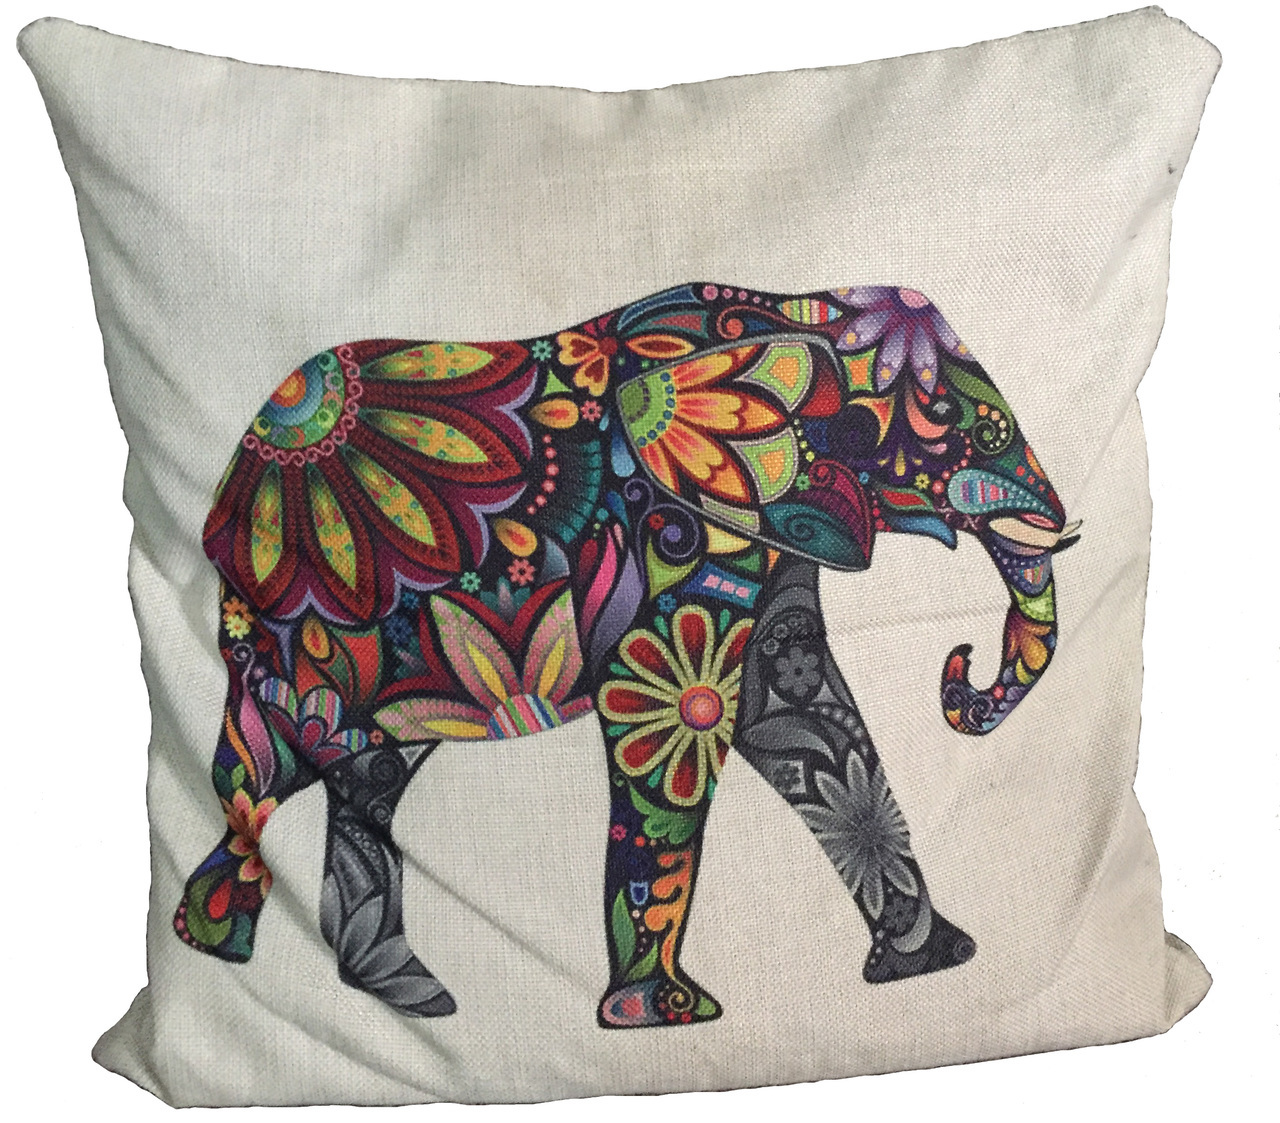 Elehphant Cushion Cover 16x16 $18.99